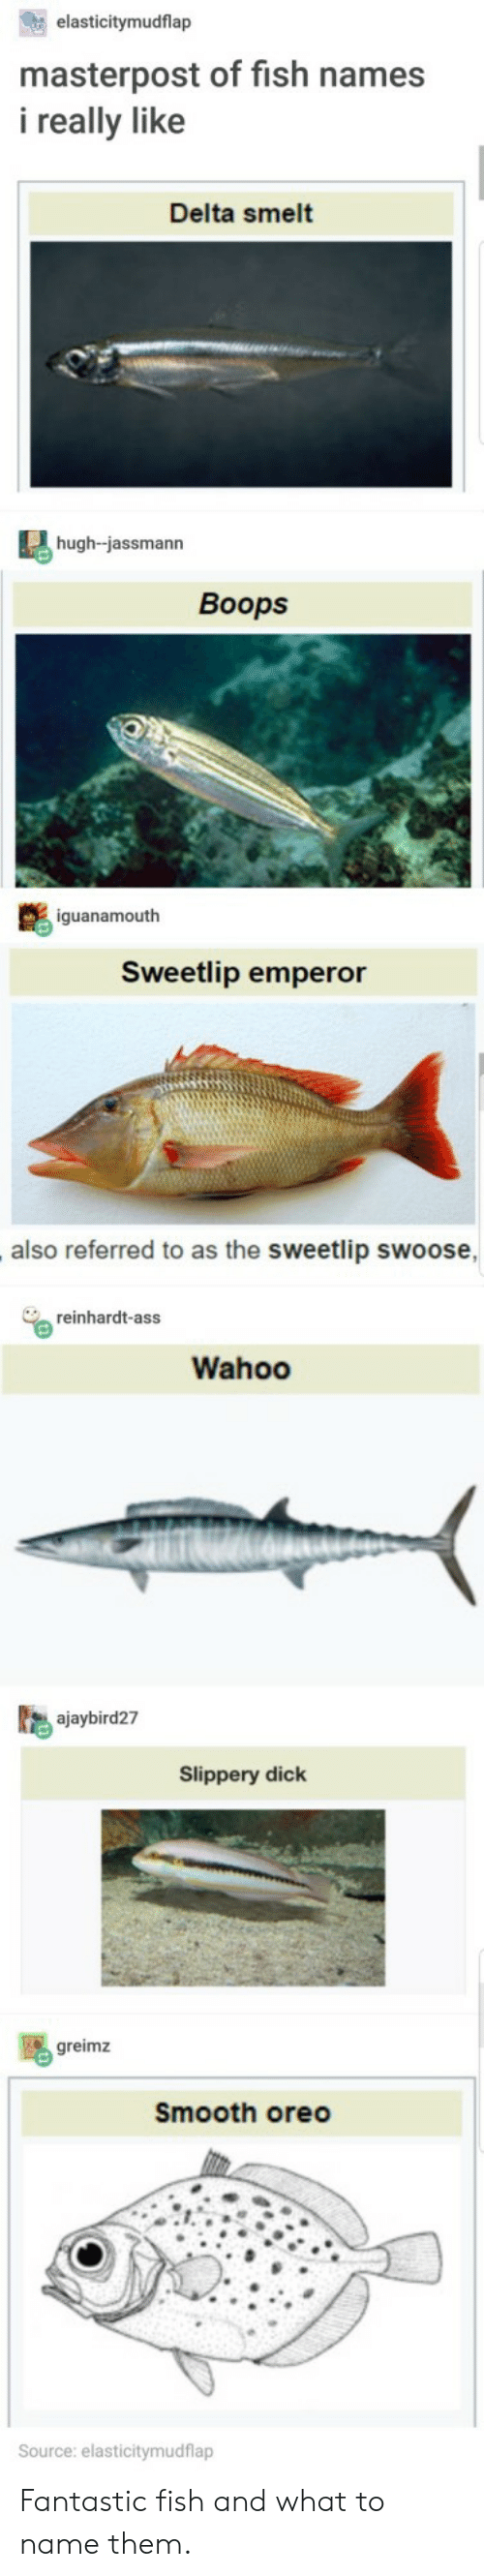 smelt: elasticitymudflap  masterpost of fish names  i really like  Delta smelt  hugh-jassmann  Boops  iguanamouth  Sweetlip emperor  also referred to as the sweetlip swoose  reinhardt-ass  Wahoo  ajaybird27  Slippery dick  greimz  Smooth oreo  ource: elasticitymudflap Fantastic fish and what to name them.